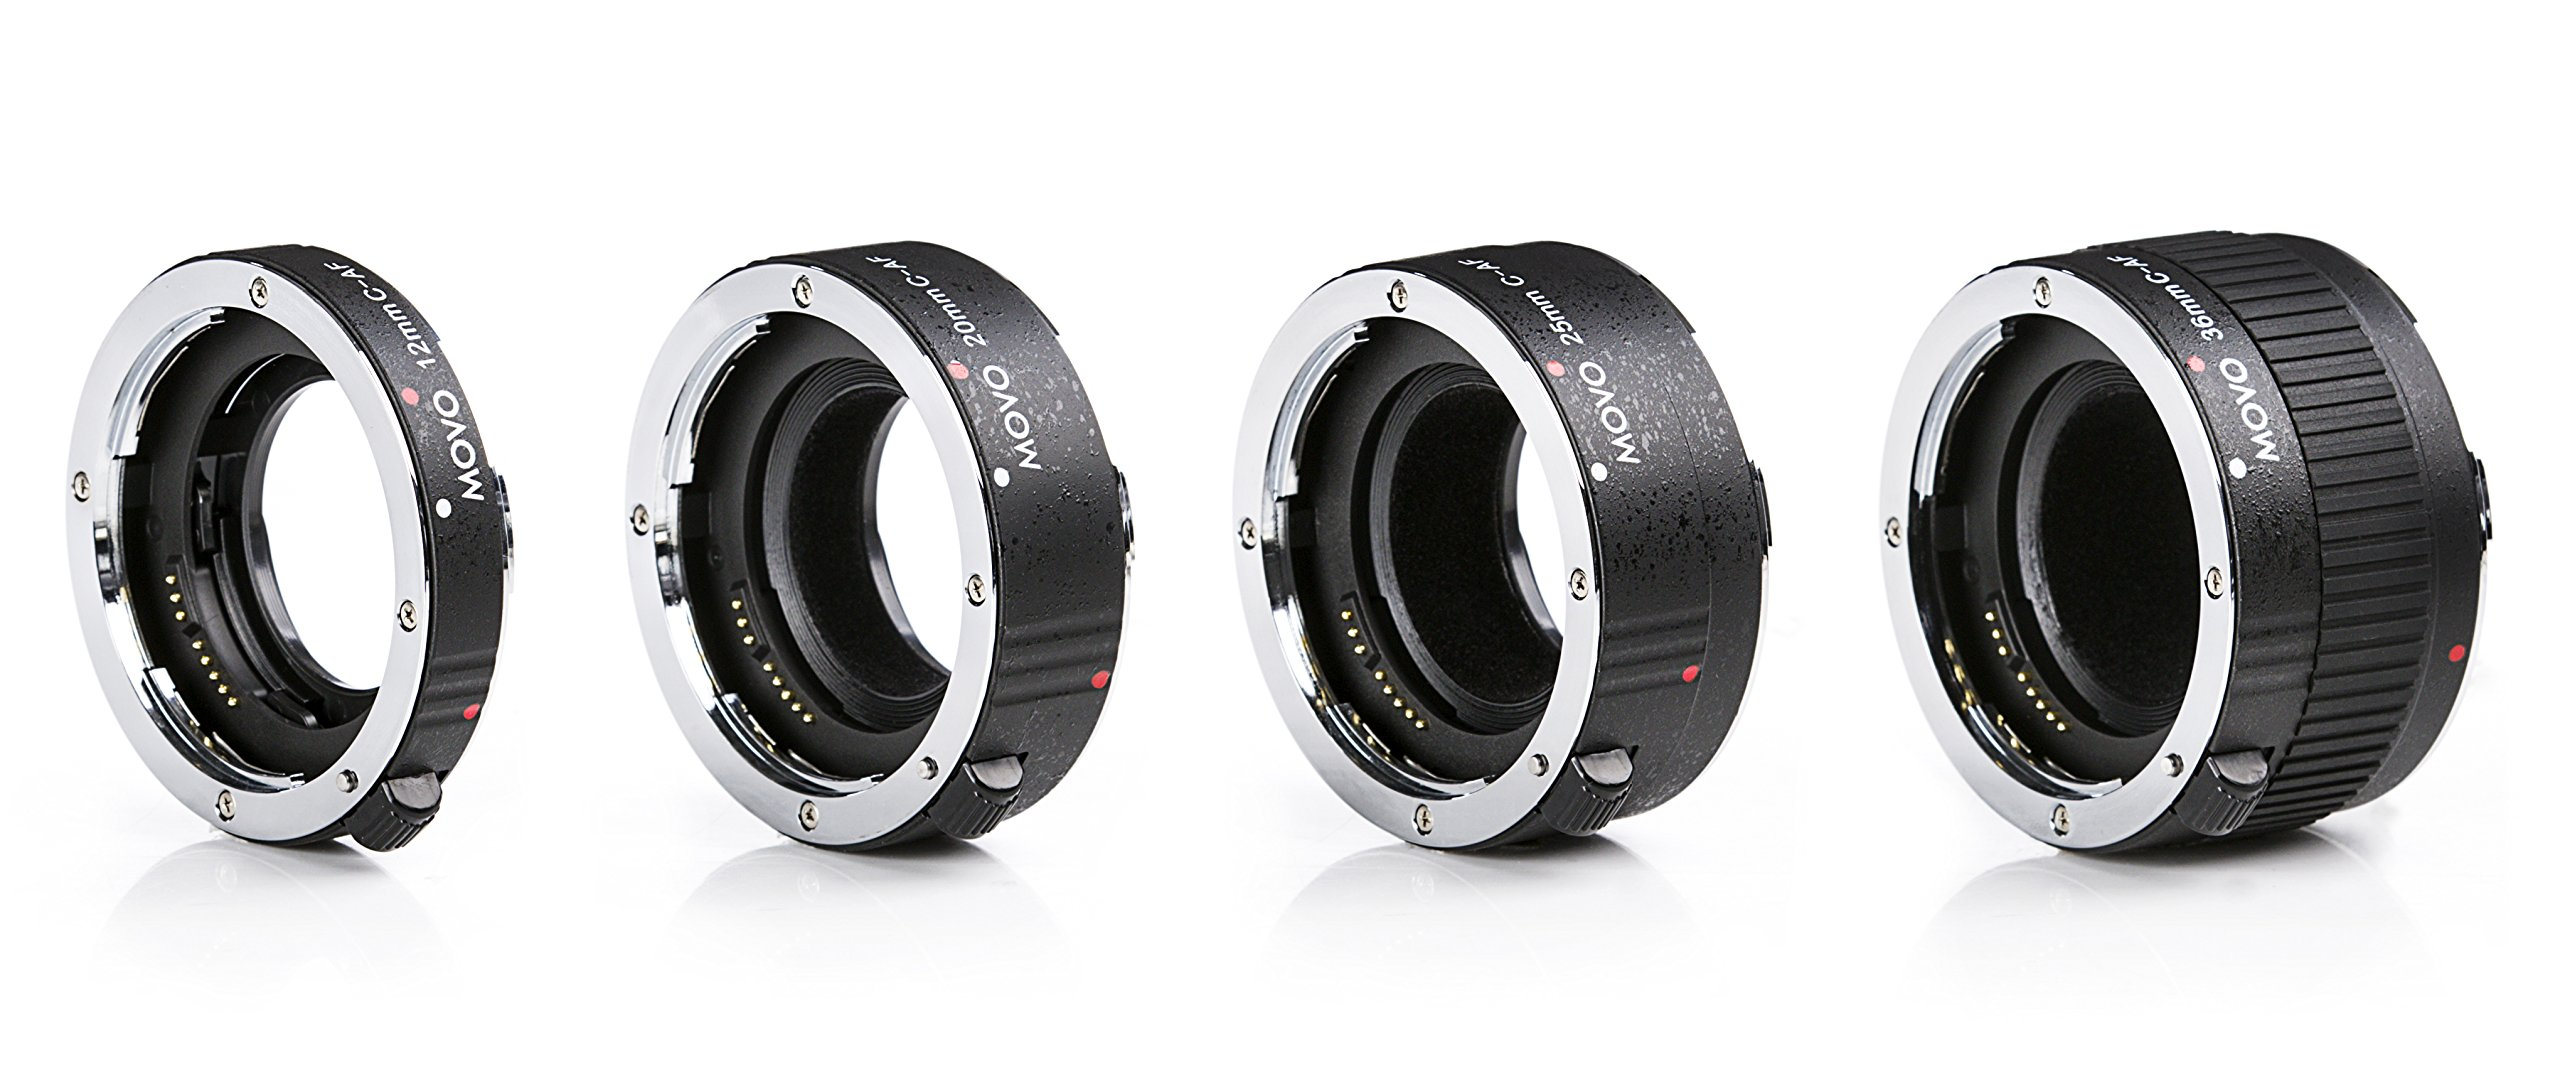 Movo MT-C93 4-Piece AF Chrome Macro Extension Tube Set for Canon EOS DSLR Camera with 12mm, 20mm, 25mm, 36mm Tubes by Movo